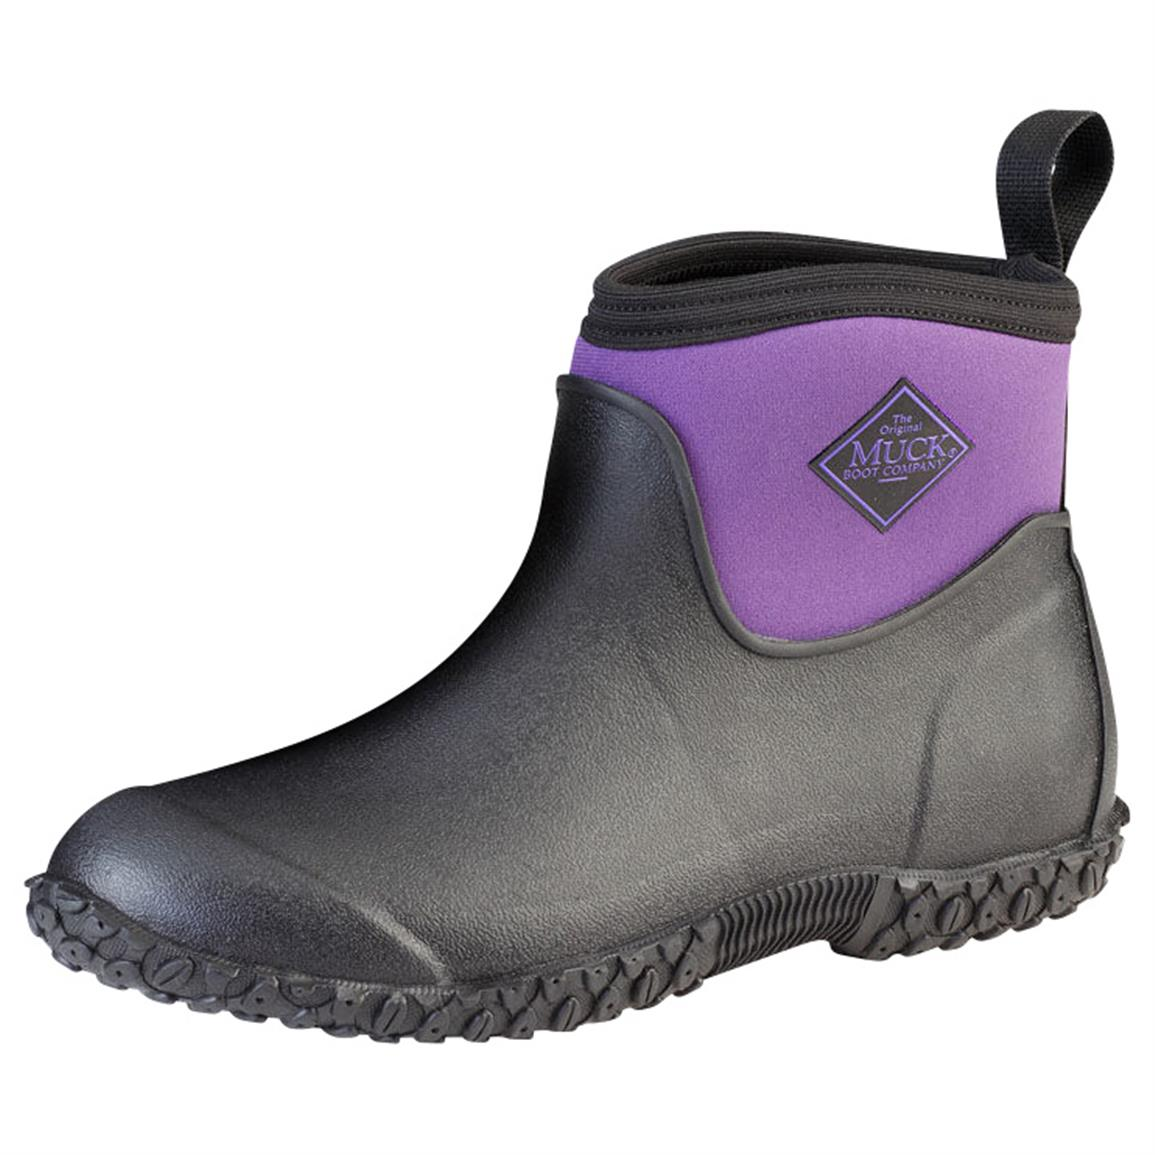 The Original Muck Boot Company Women's Muckster II Boots, Waterproof, Ankle, Black / Purple